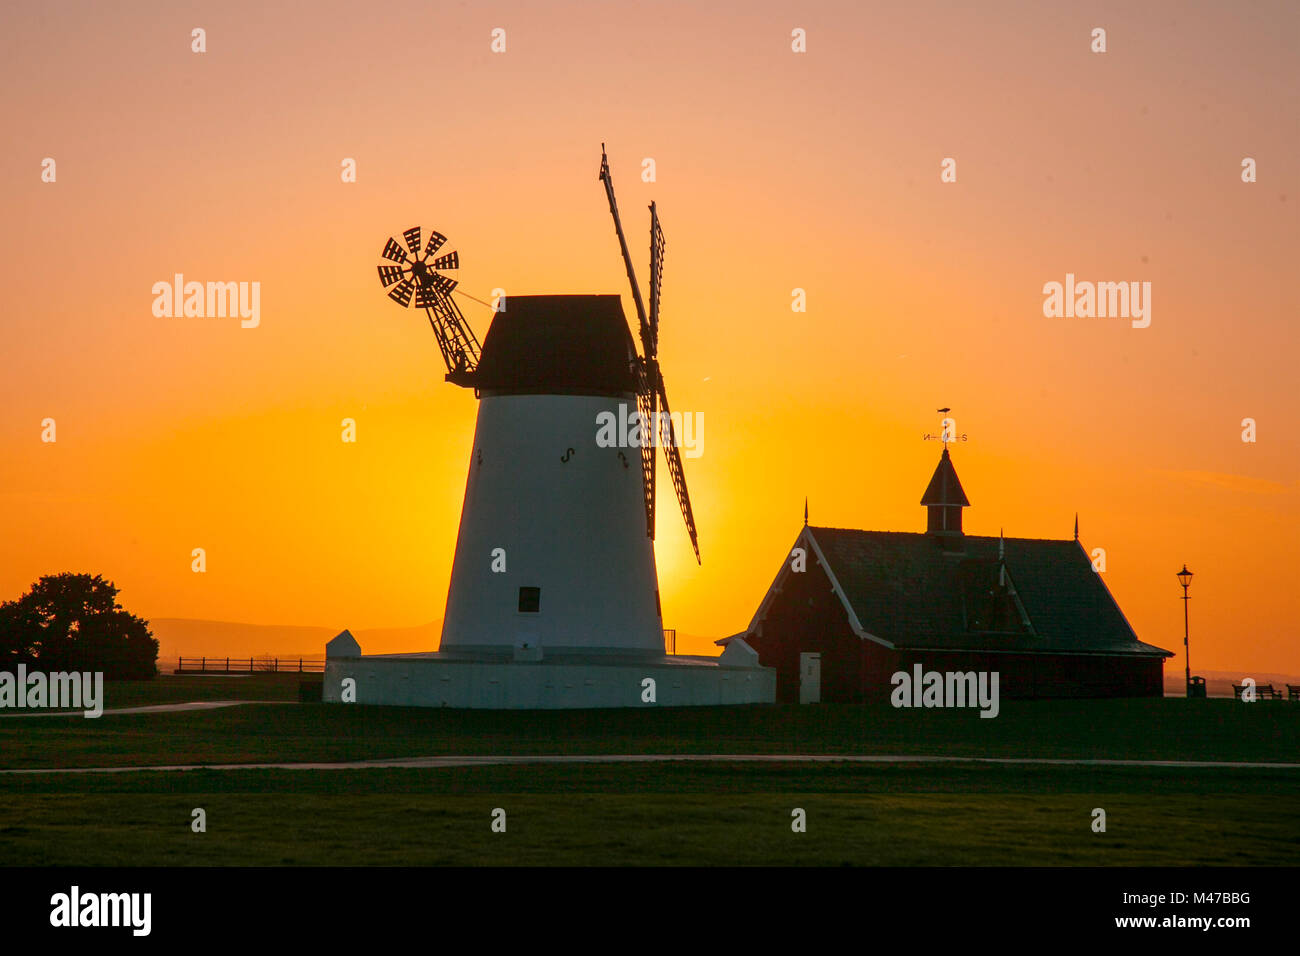 Lytham St Annes, Lancashire UK Weather. 15th February 2018. Sunny start to a cold day with wintry showers forecast. - Stock Image